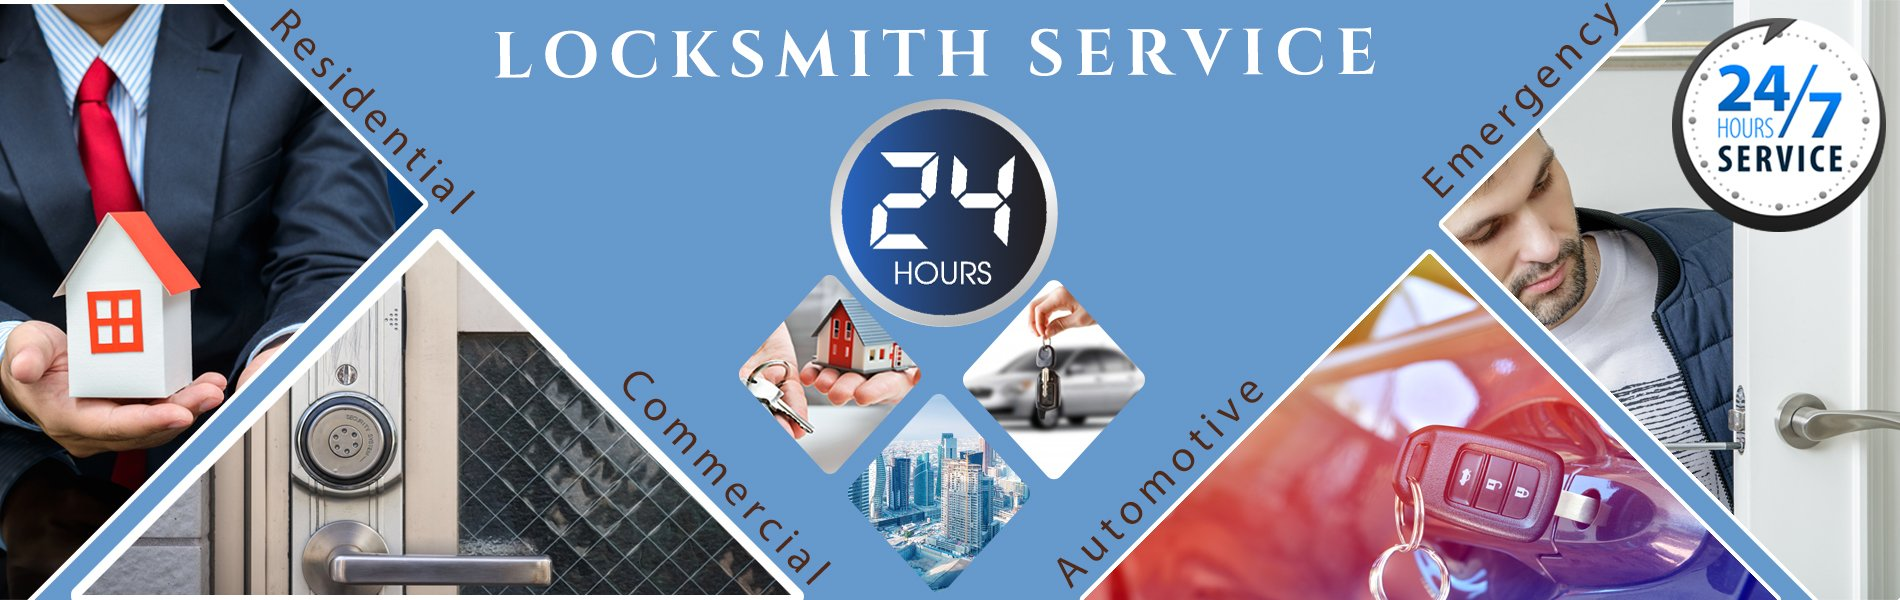 State Locksmith Services New Orleans, LA 504-434-4799